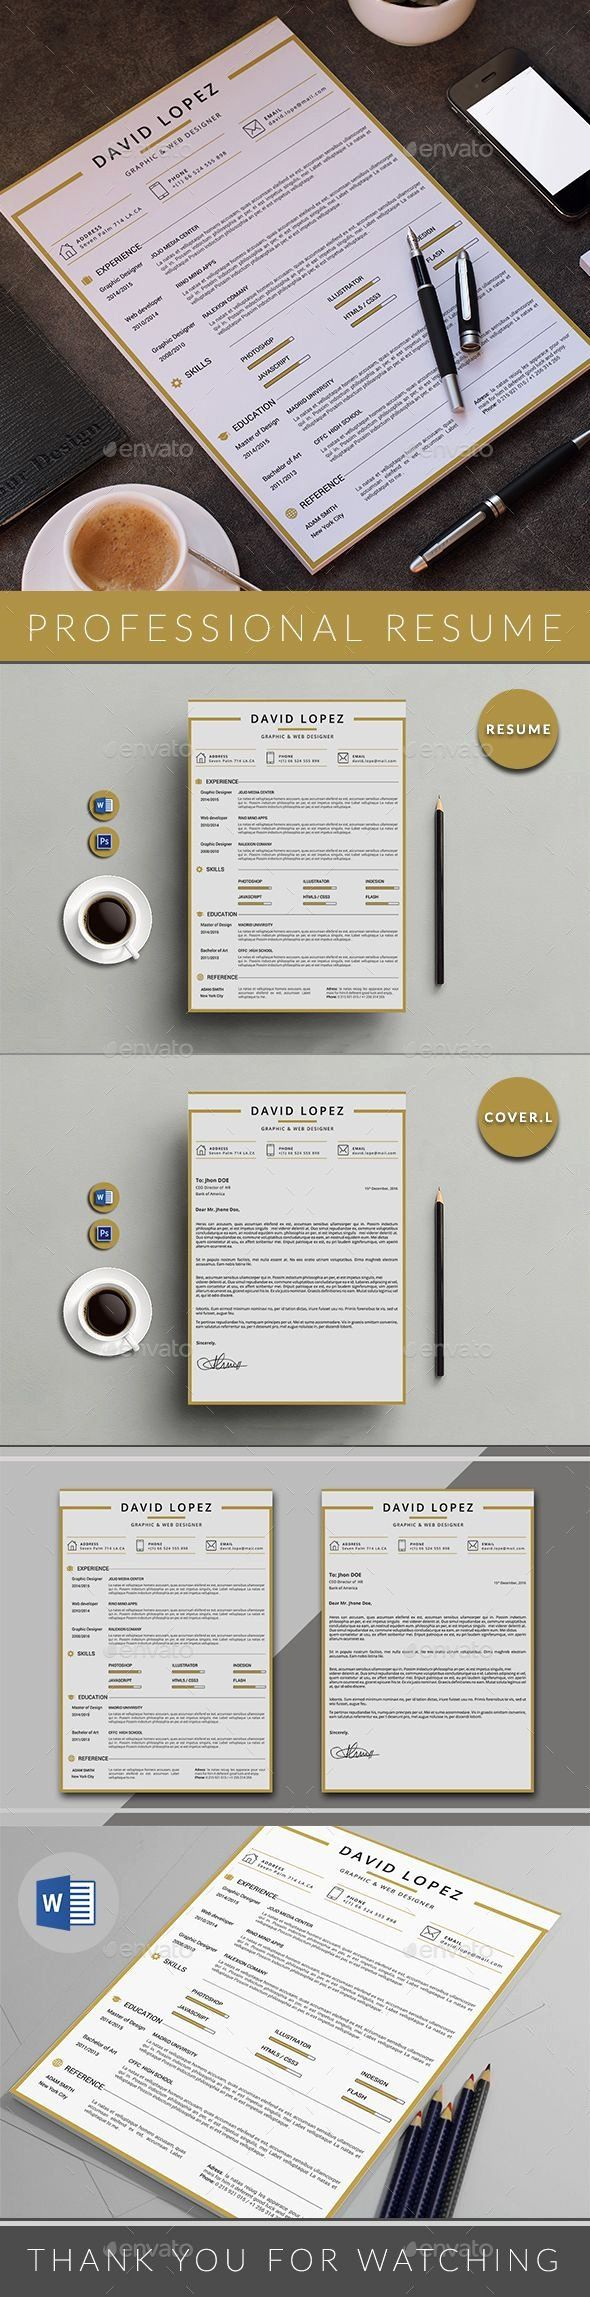 Brag Book Cover Page Template Fresh 1000 Ideas About Cv Template On Pinterest Cover Page Template Book Cover Page Resume Template Free Brag book cover page template